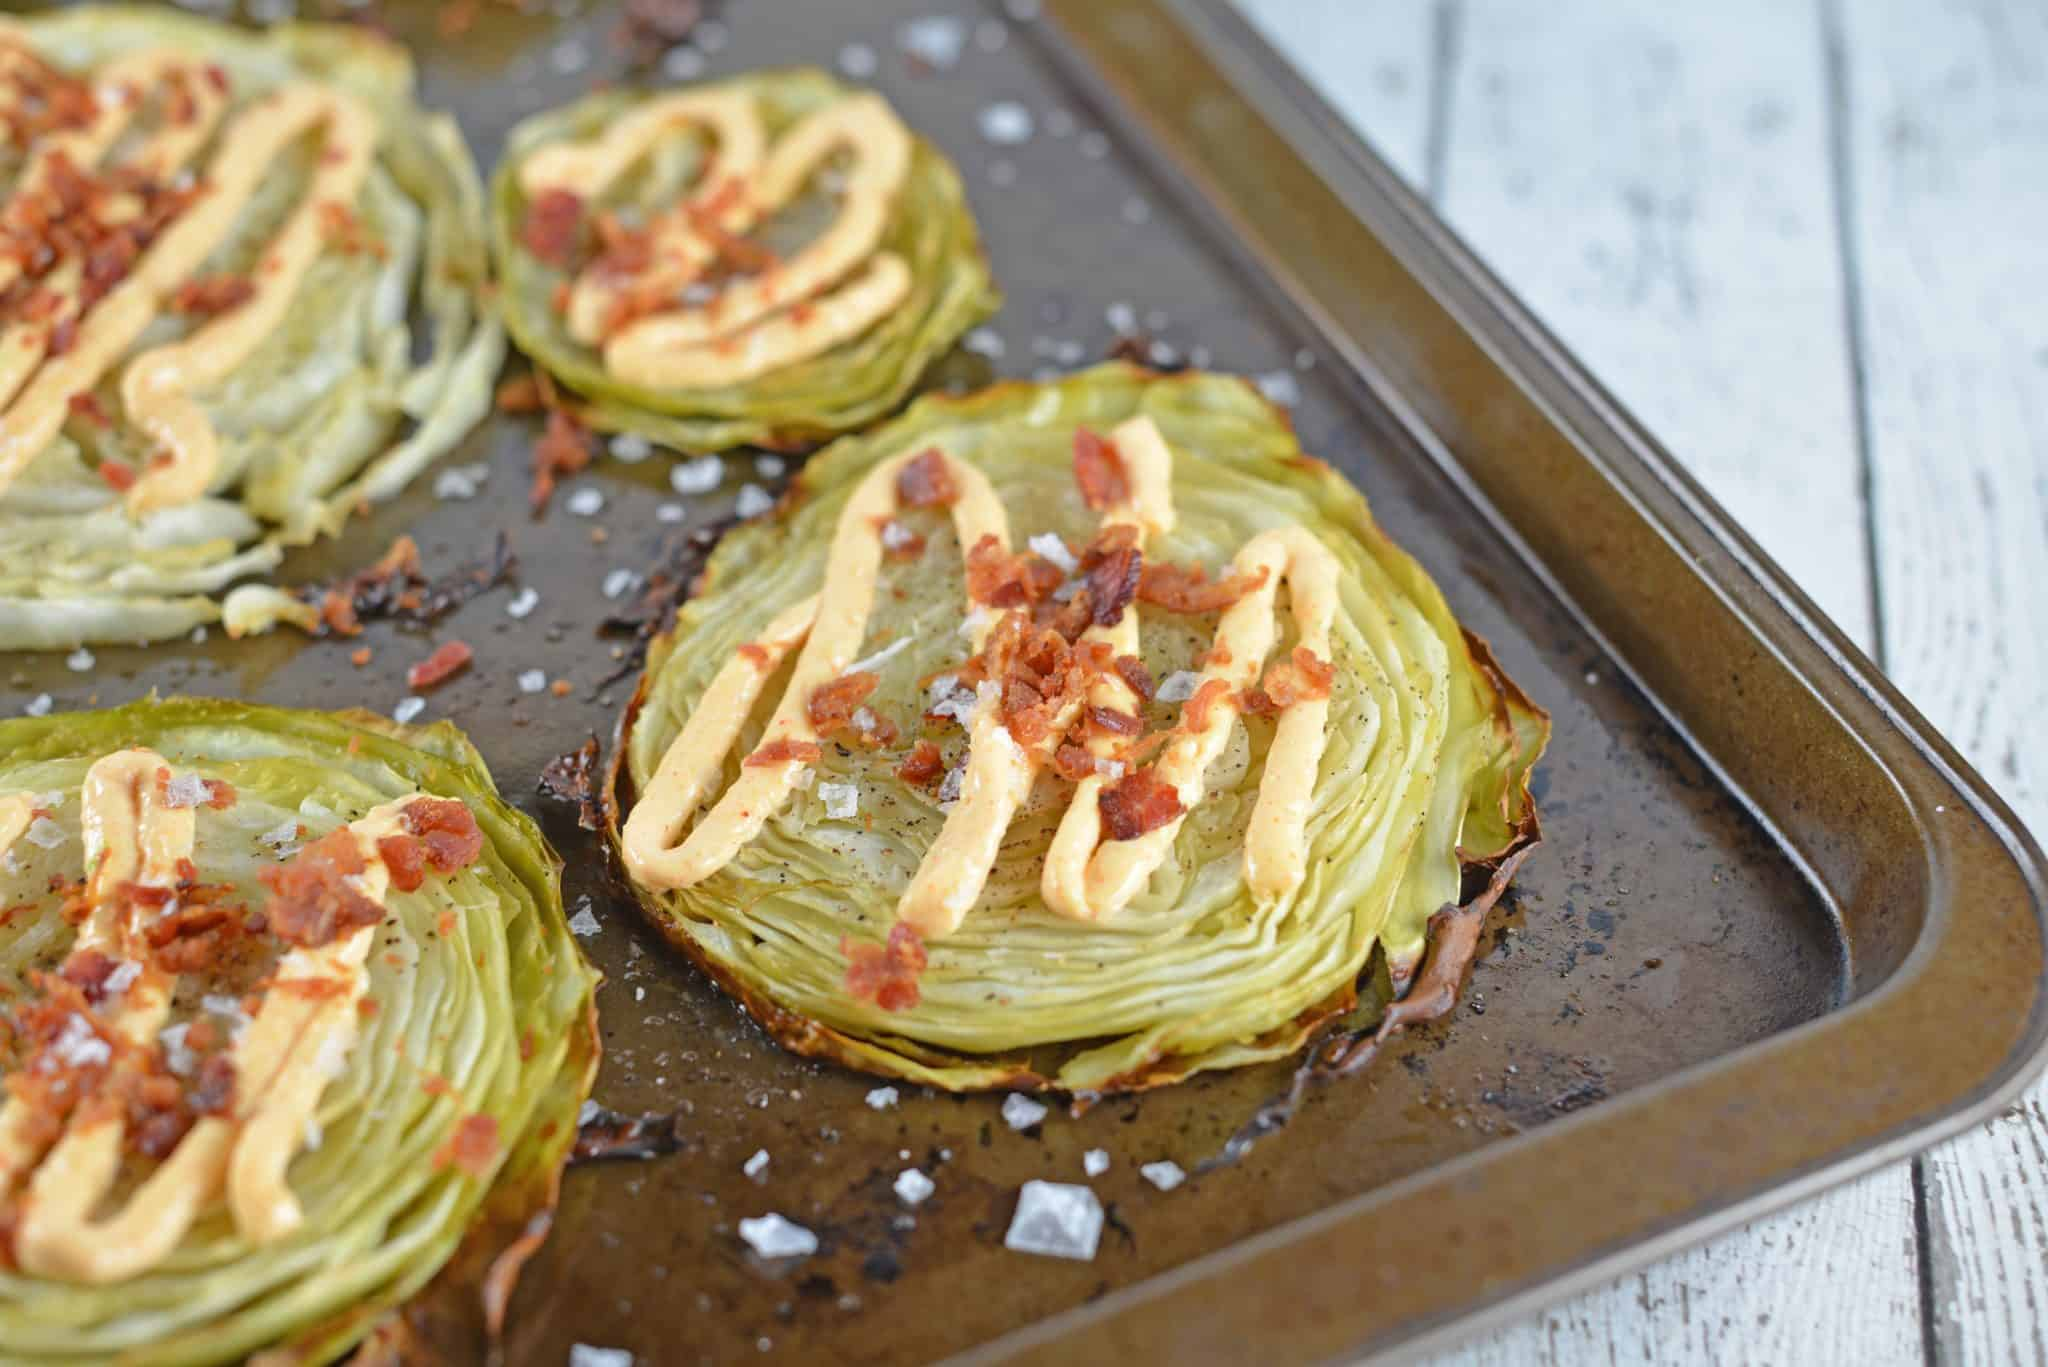 Garlic Cabbage Steaks are caramelized to perfection, then topped with a garlic and smoked paprika aioli, bacon and sea salt. Serve with any meal, especially corned beef!